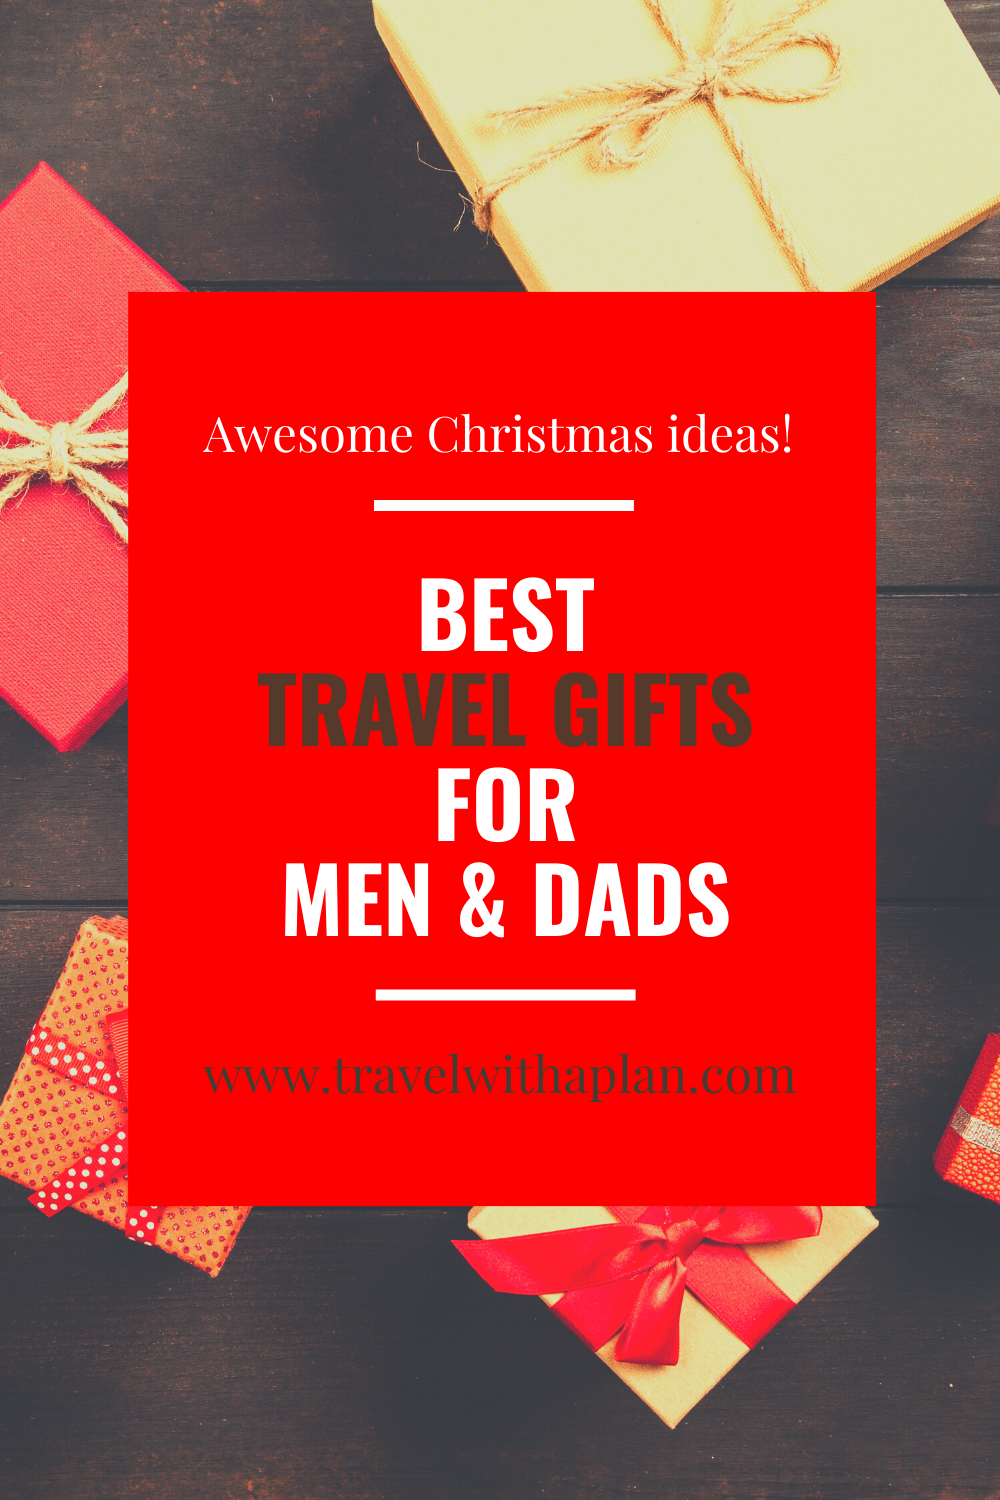 Click here for a list of 15+ travel gifts ideas for men!  Our list of the perfect travel gifts comes from top U.S. family travel blog, Travel With A Plan!